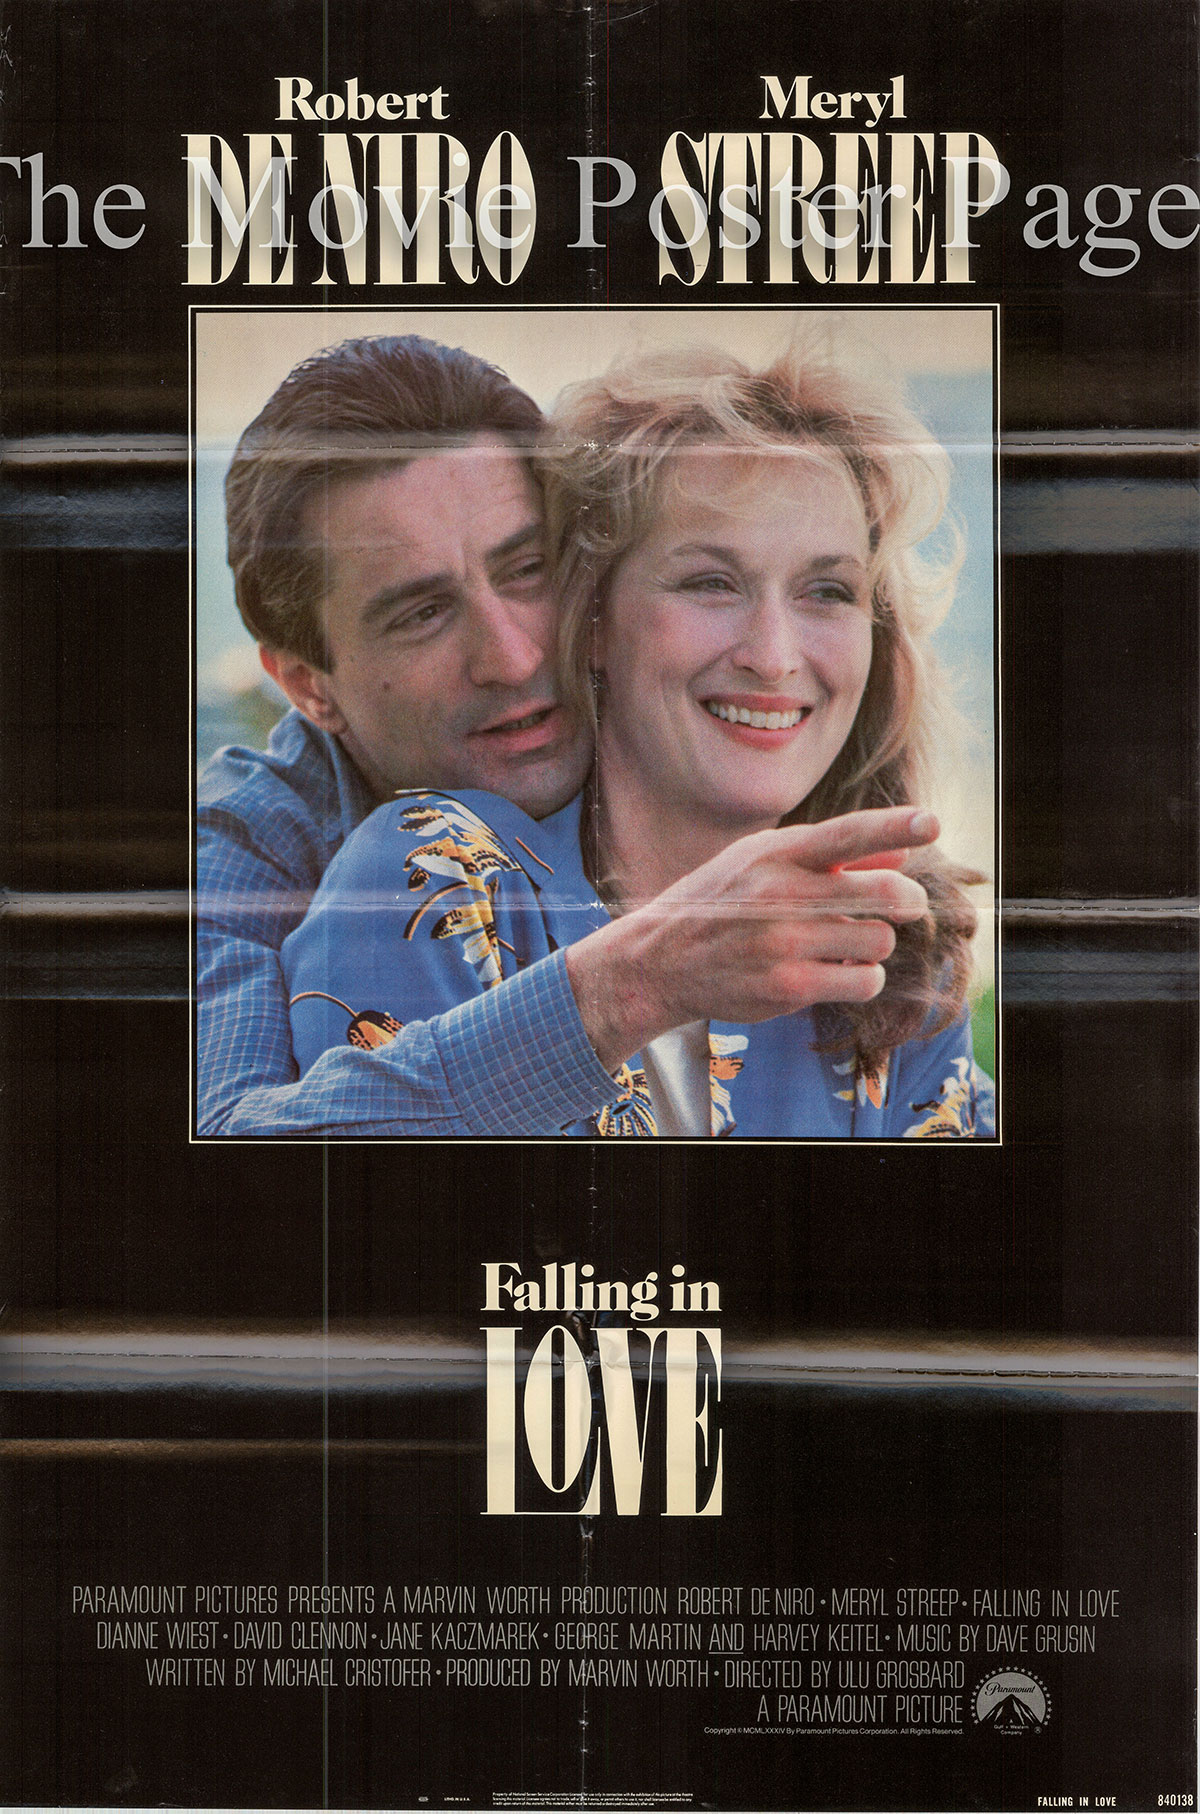 Pictured is a US one-sheet poster for the 1984 Ulu Grosbard film Falling in Love starring Robert De Niro.